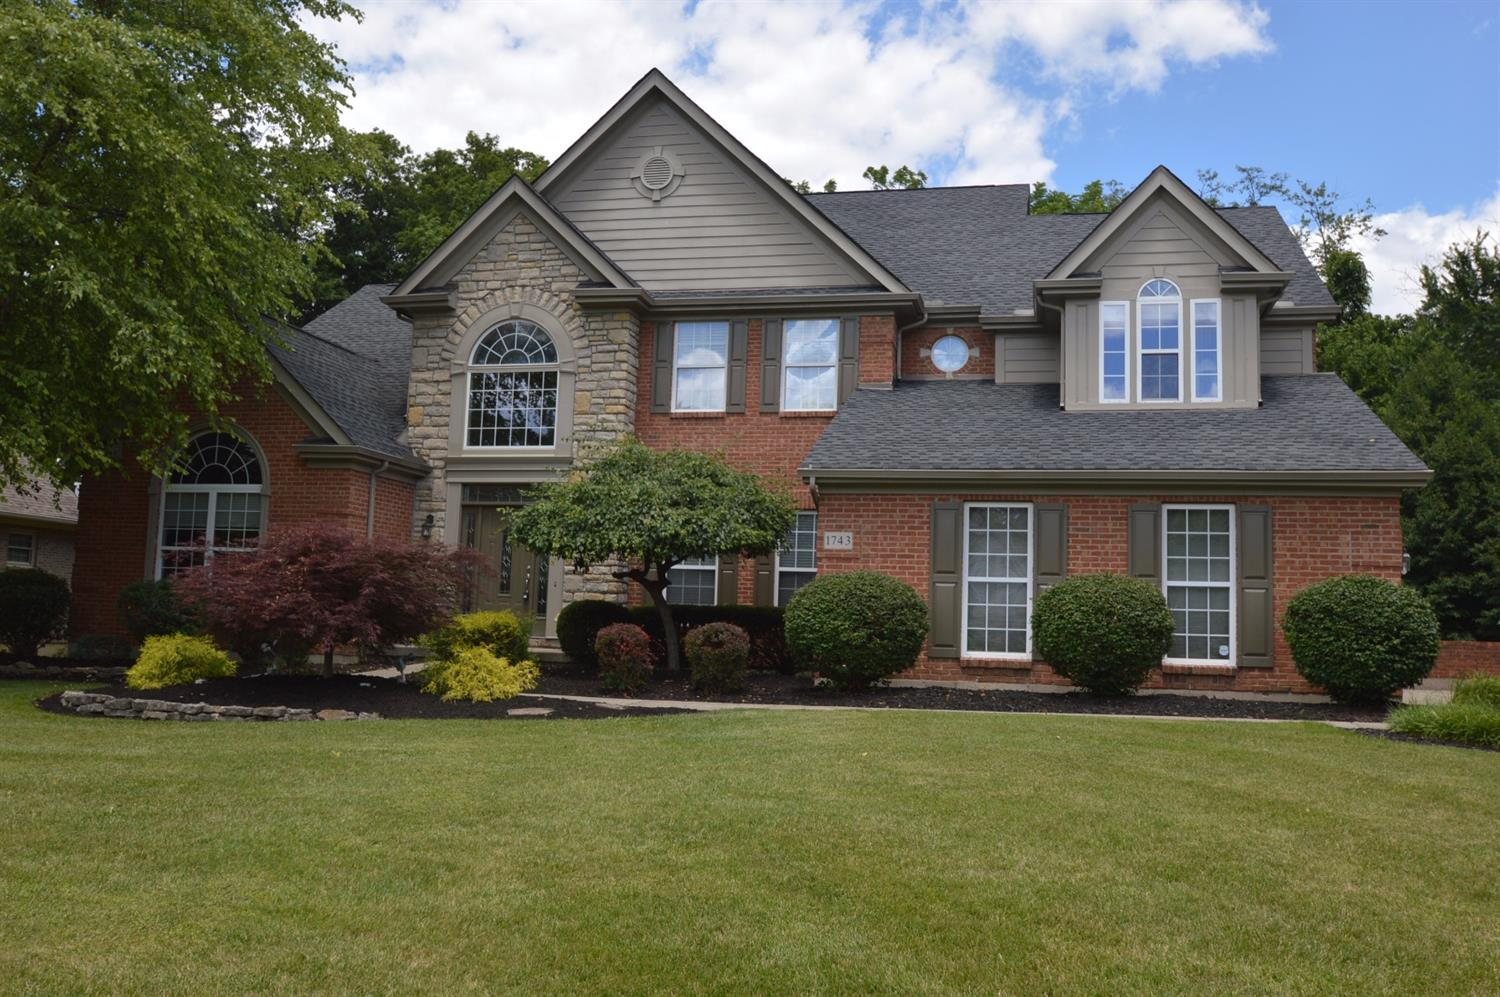 1743 Cottontail Drive, Miami Twp, OH 45150